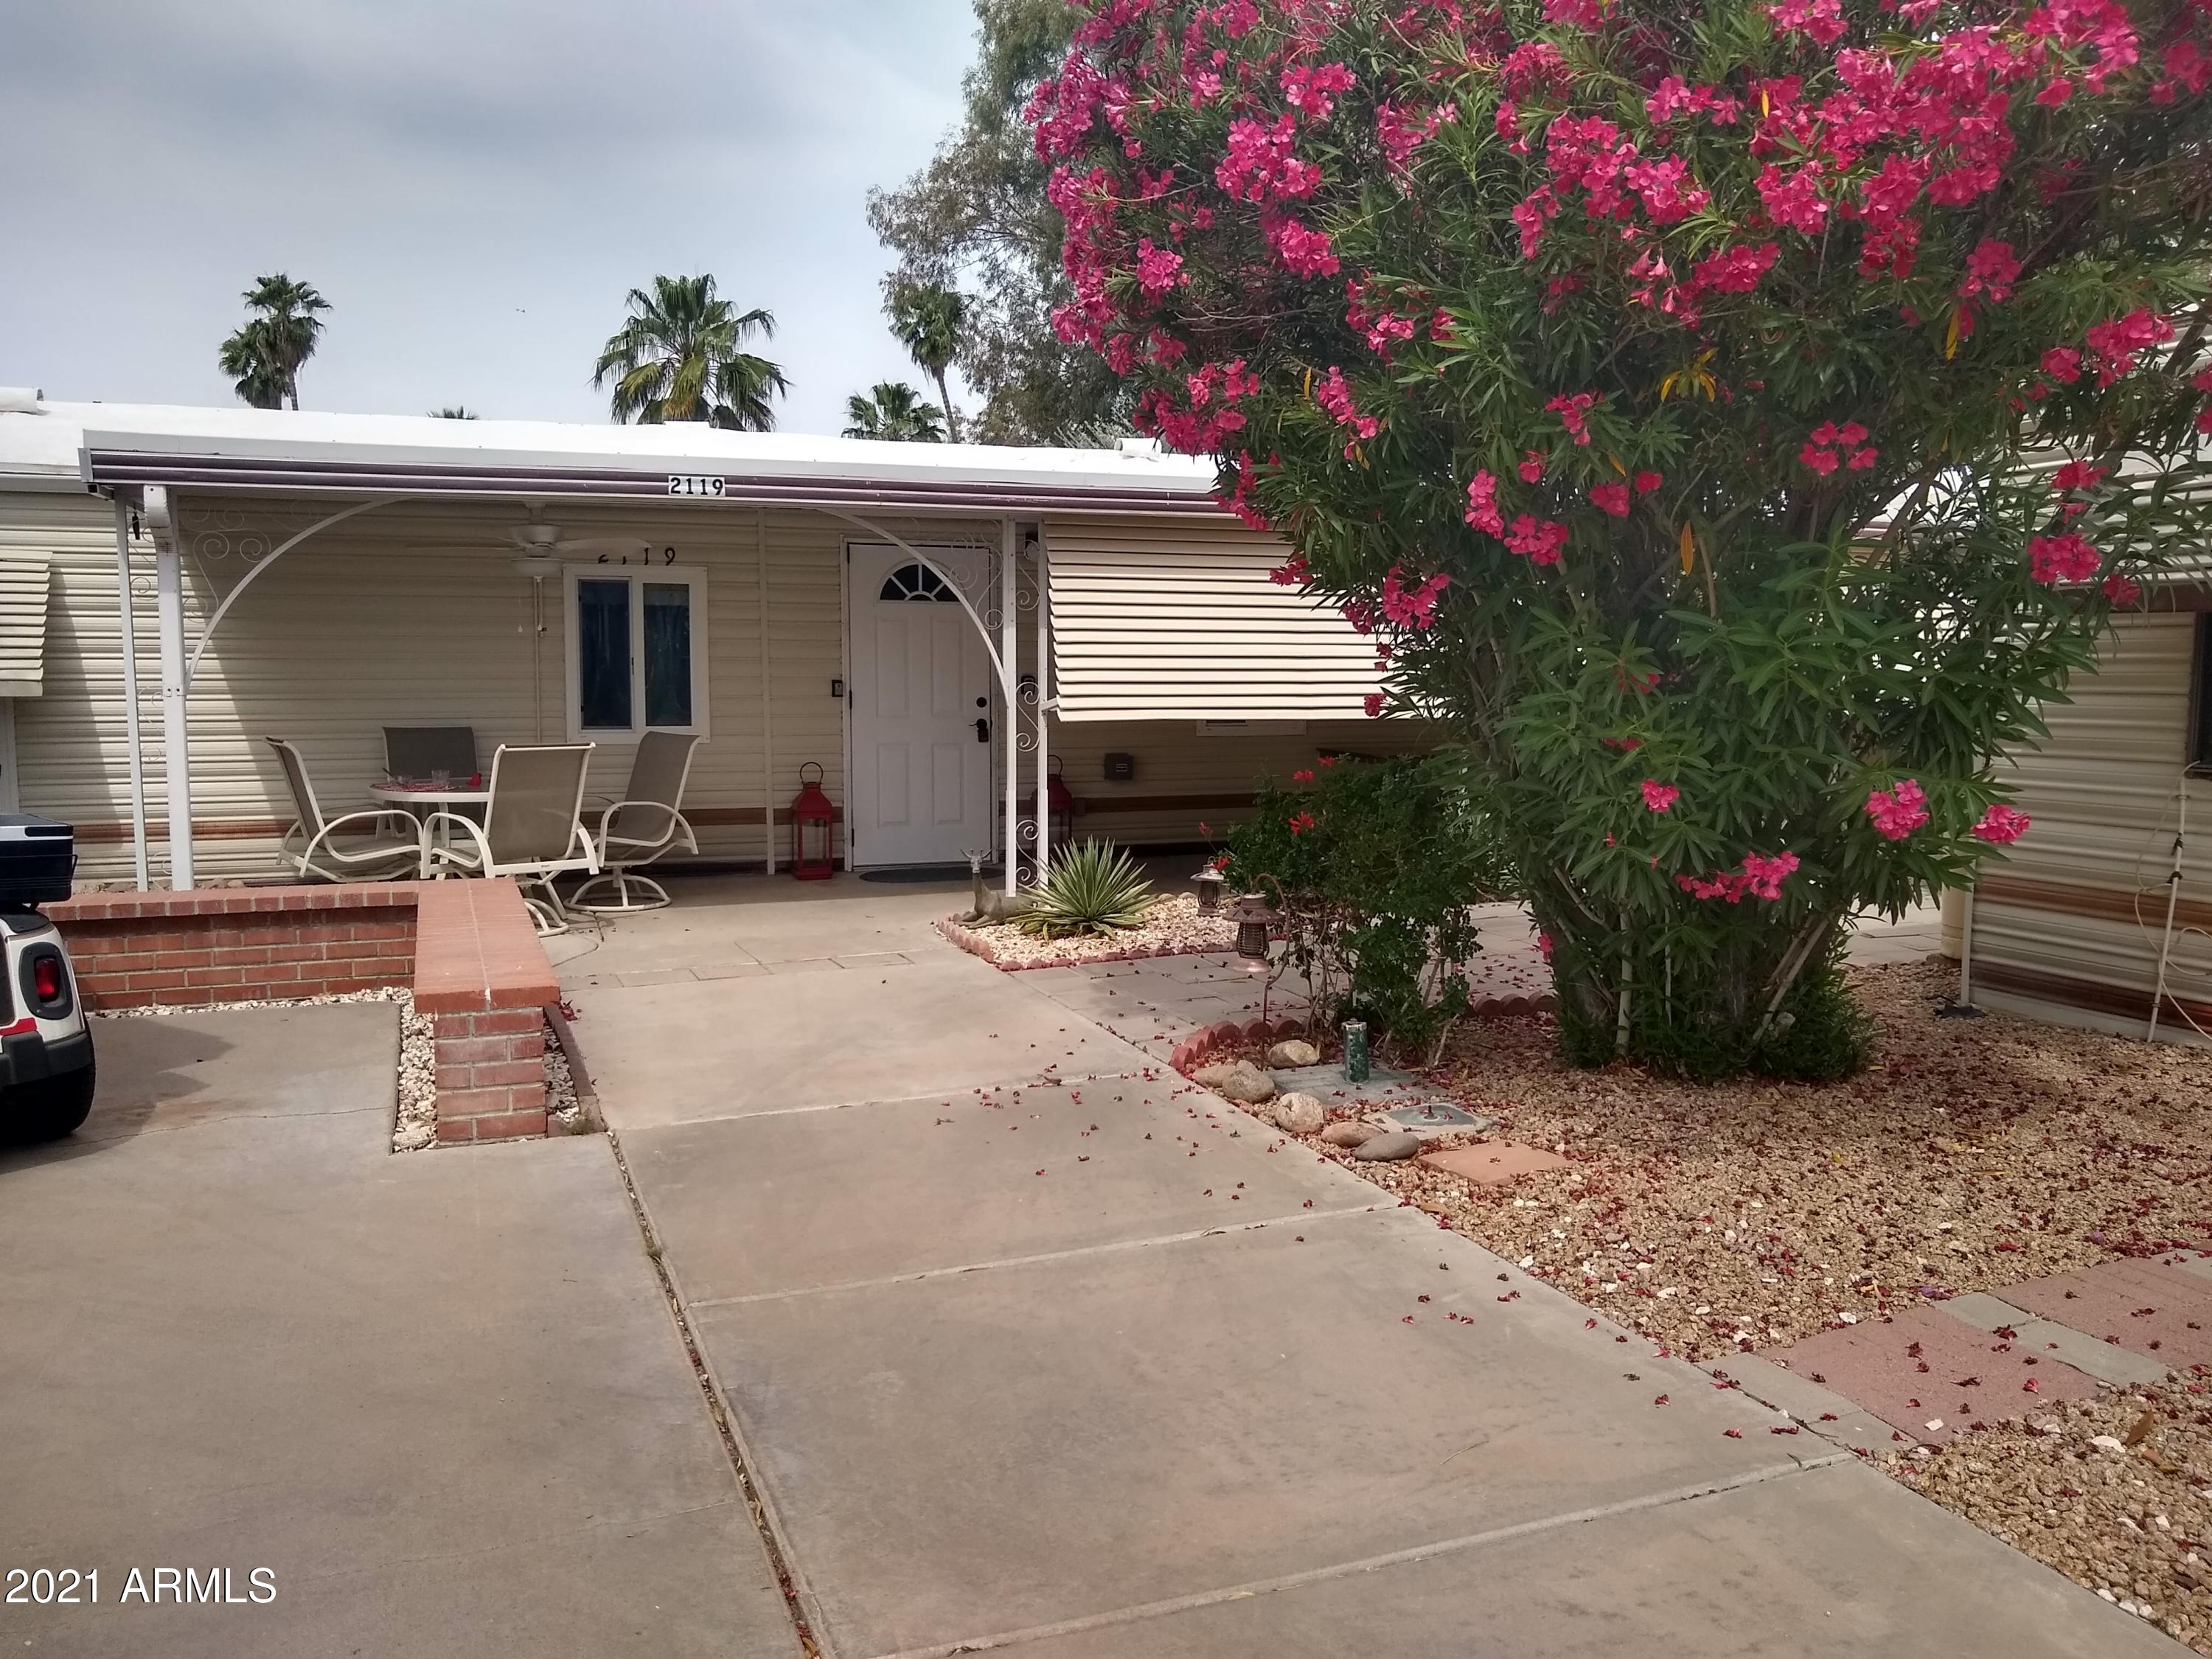 17200 BELL Road, Surprise, Arizona 85374, 2 Bedrooms Bedrooms, ,1 BathroomBathrooms,Residential,For Sale,BELL,6230011